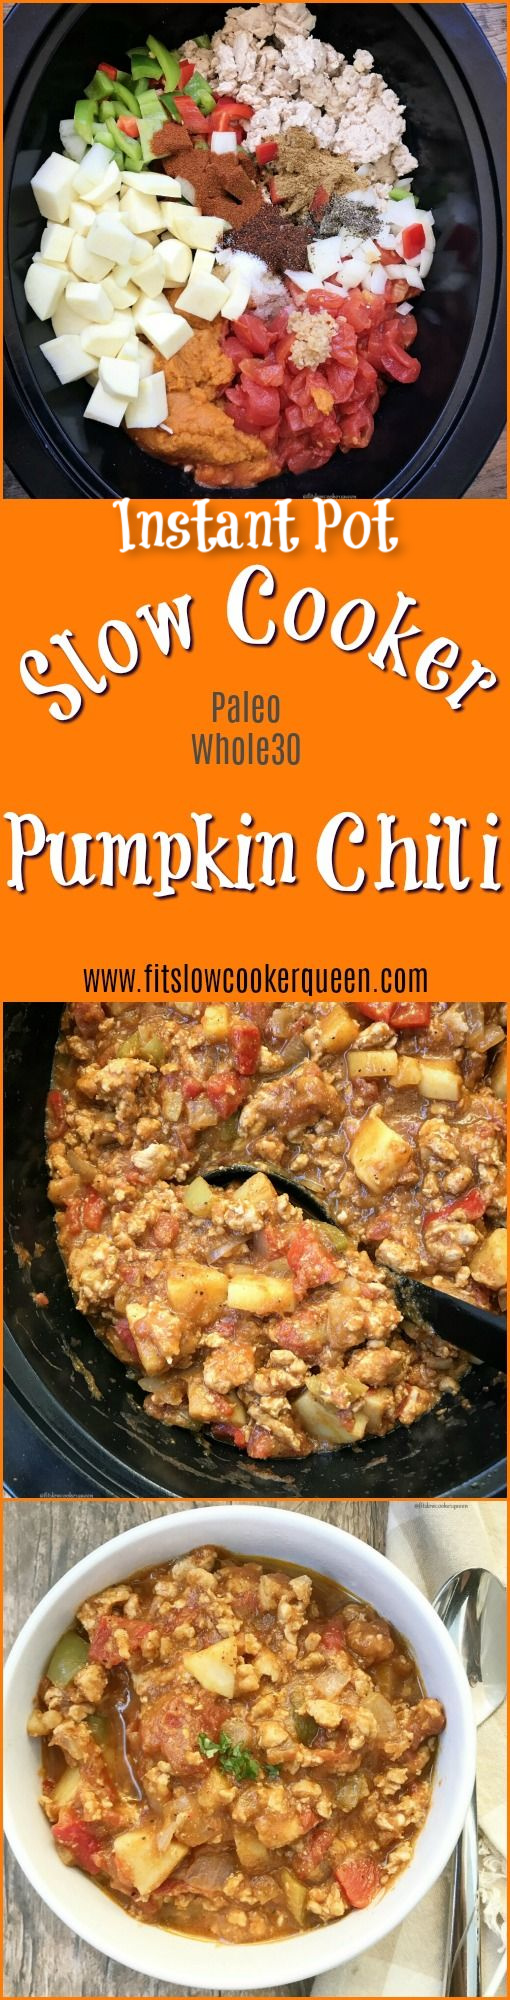 This pumpkin chili is not only hearty but healthy! Both paleo and whole30 compliant, you can make this in your slow cooker or Instant Pot.